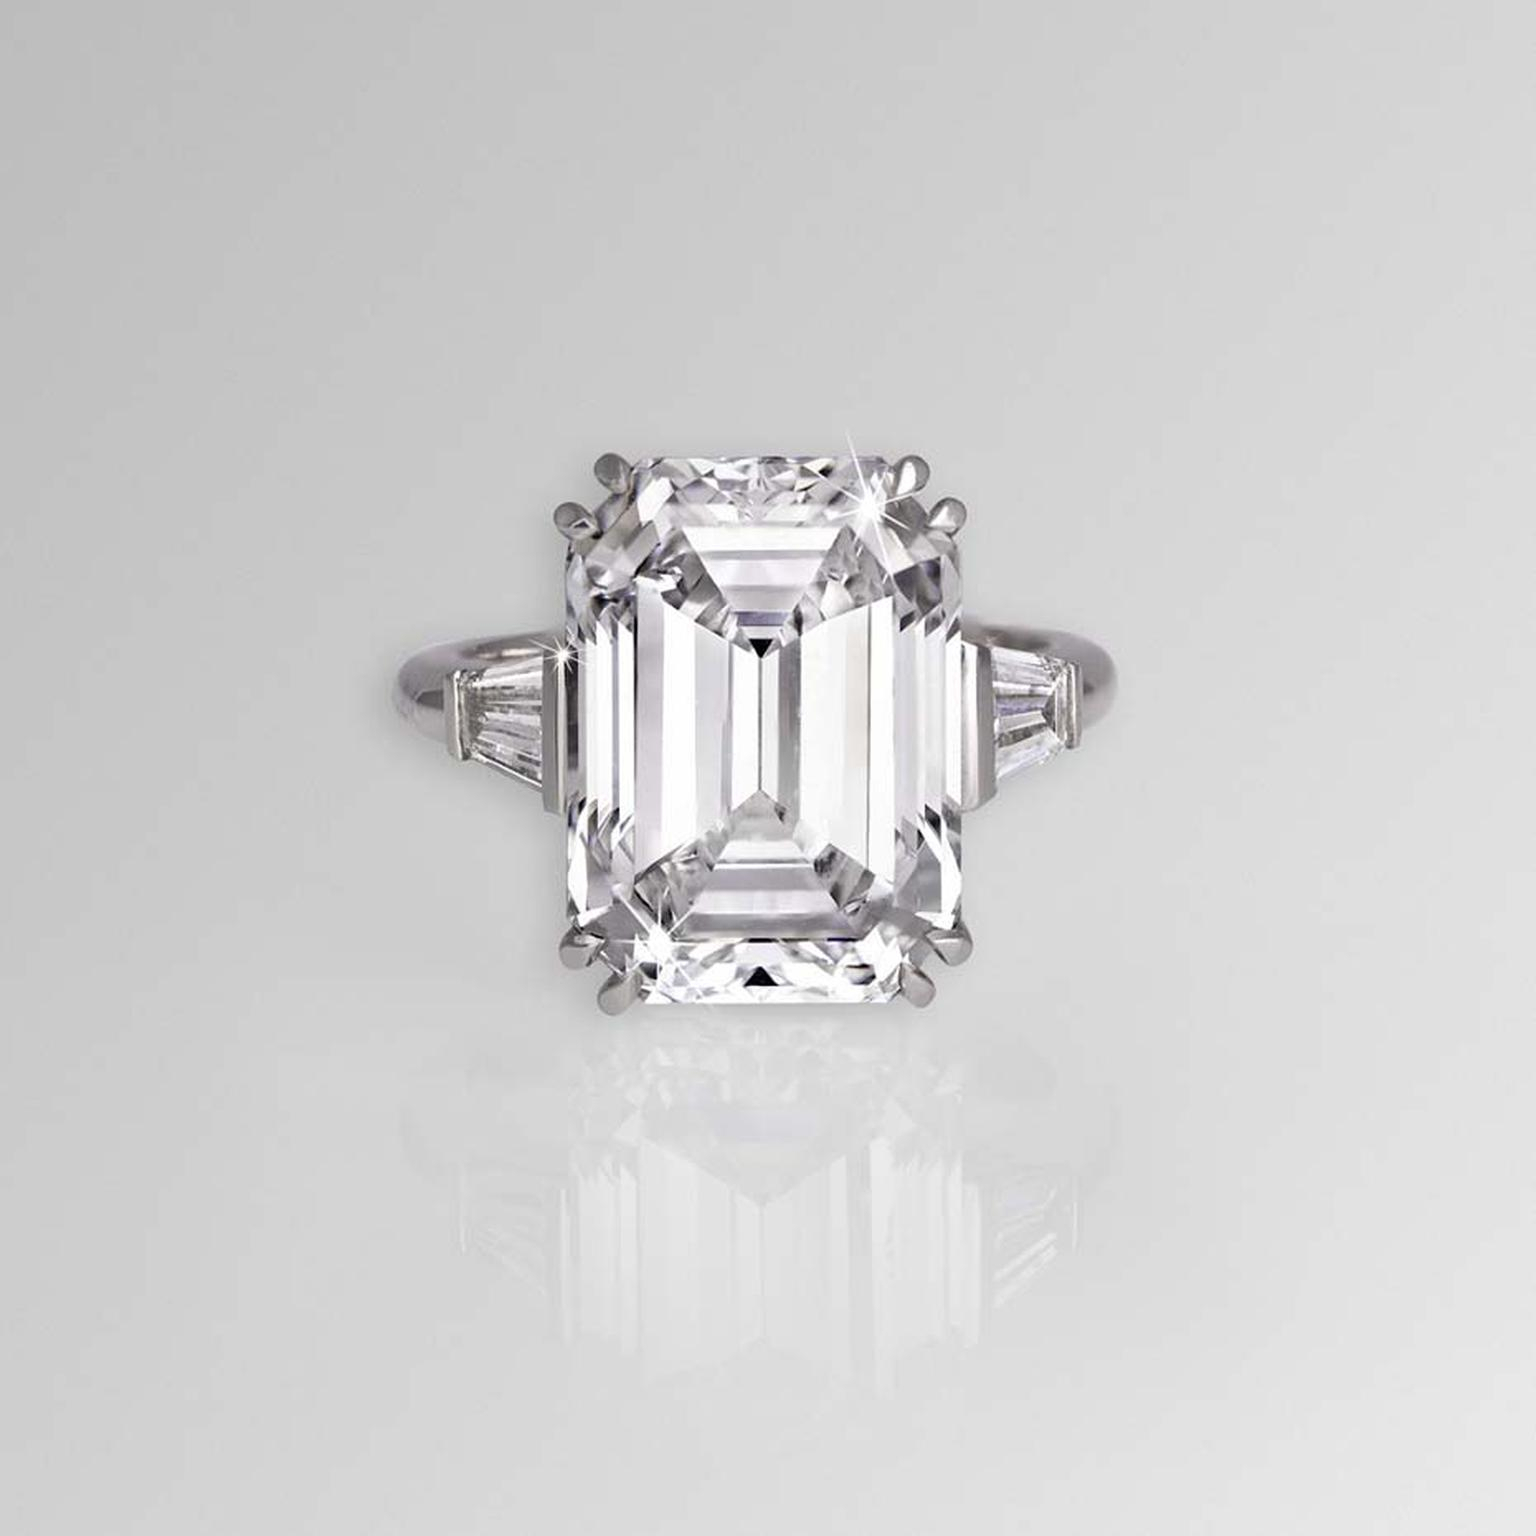 Most Beautiful Emerald Cut Diamond Ings In The World | The Pertaining To Emerald Cut Engagement Rings With Tapered Baguette Side Stones (Gallery 13 of 25)